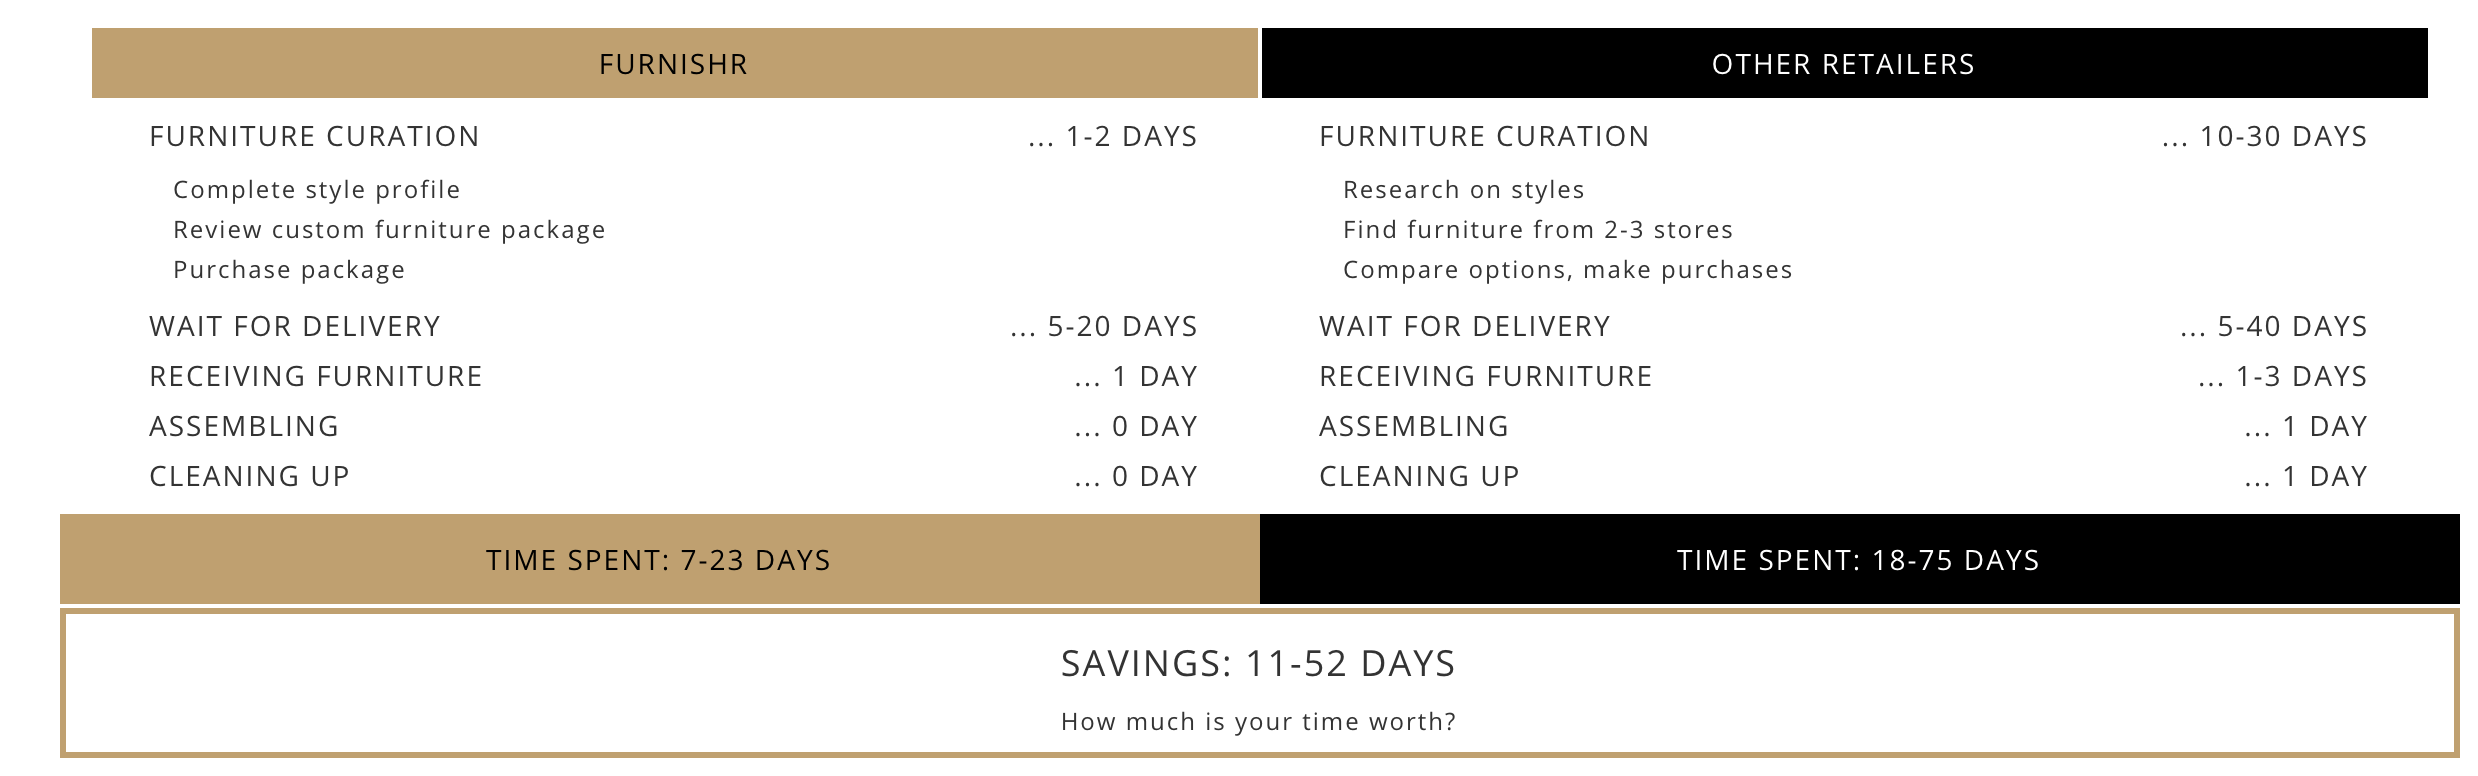 Compare the time savings from Furnishr to traditional solutions